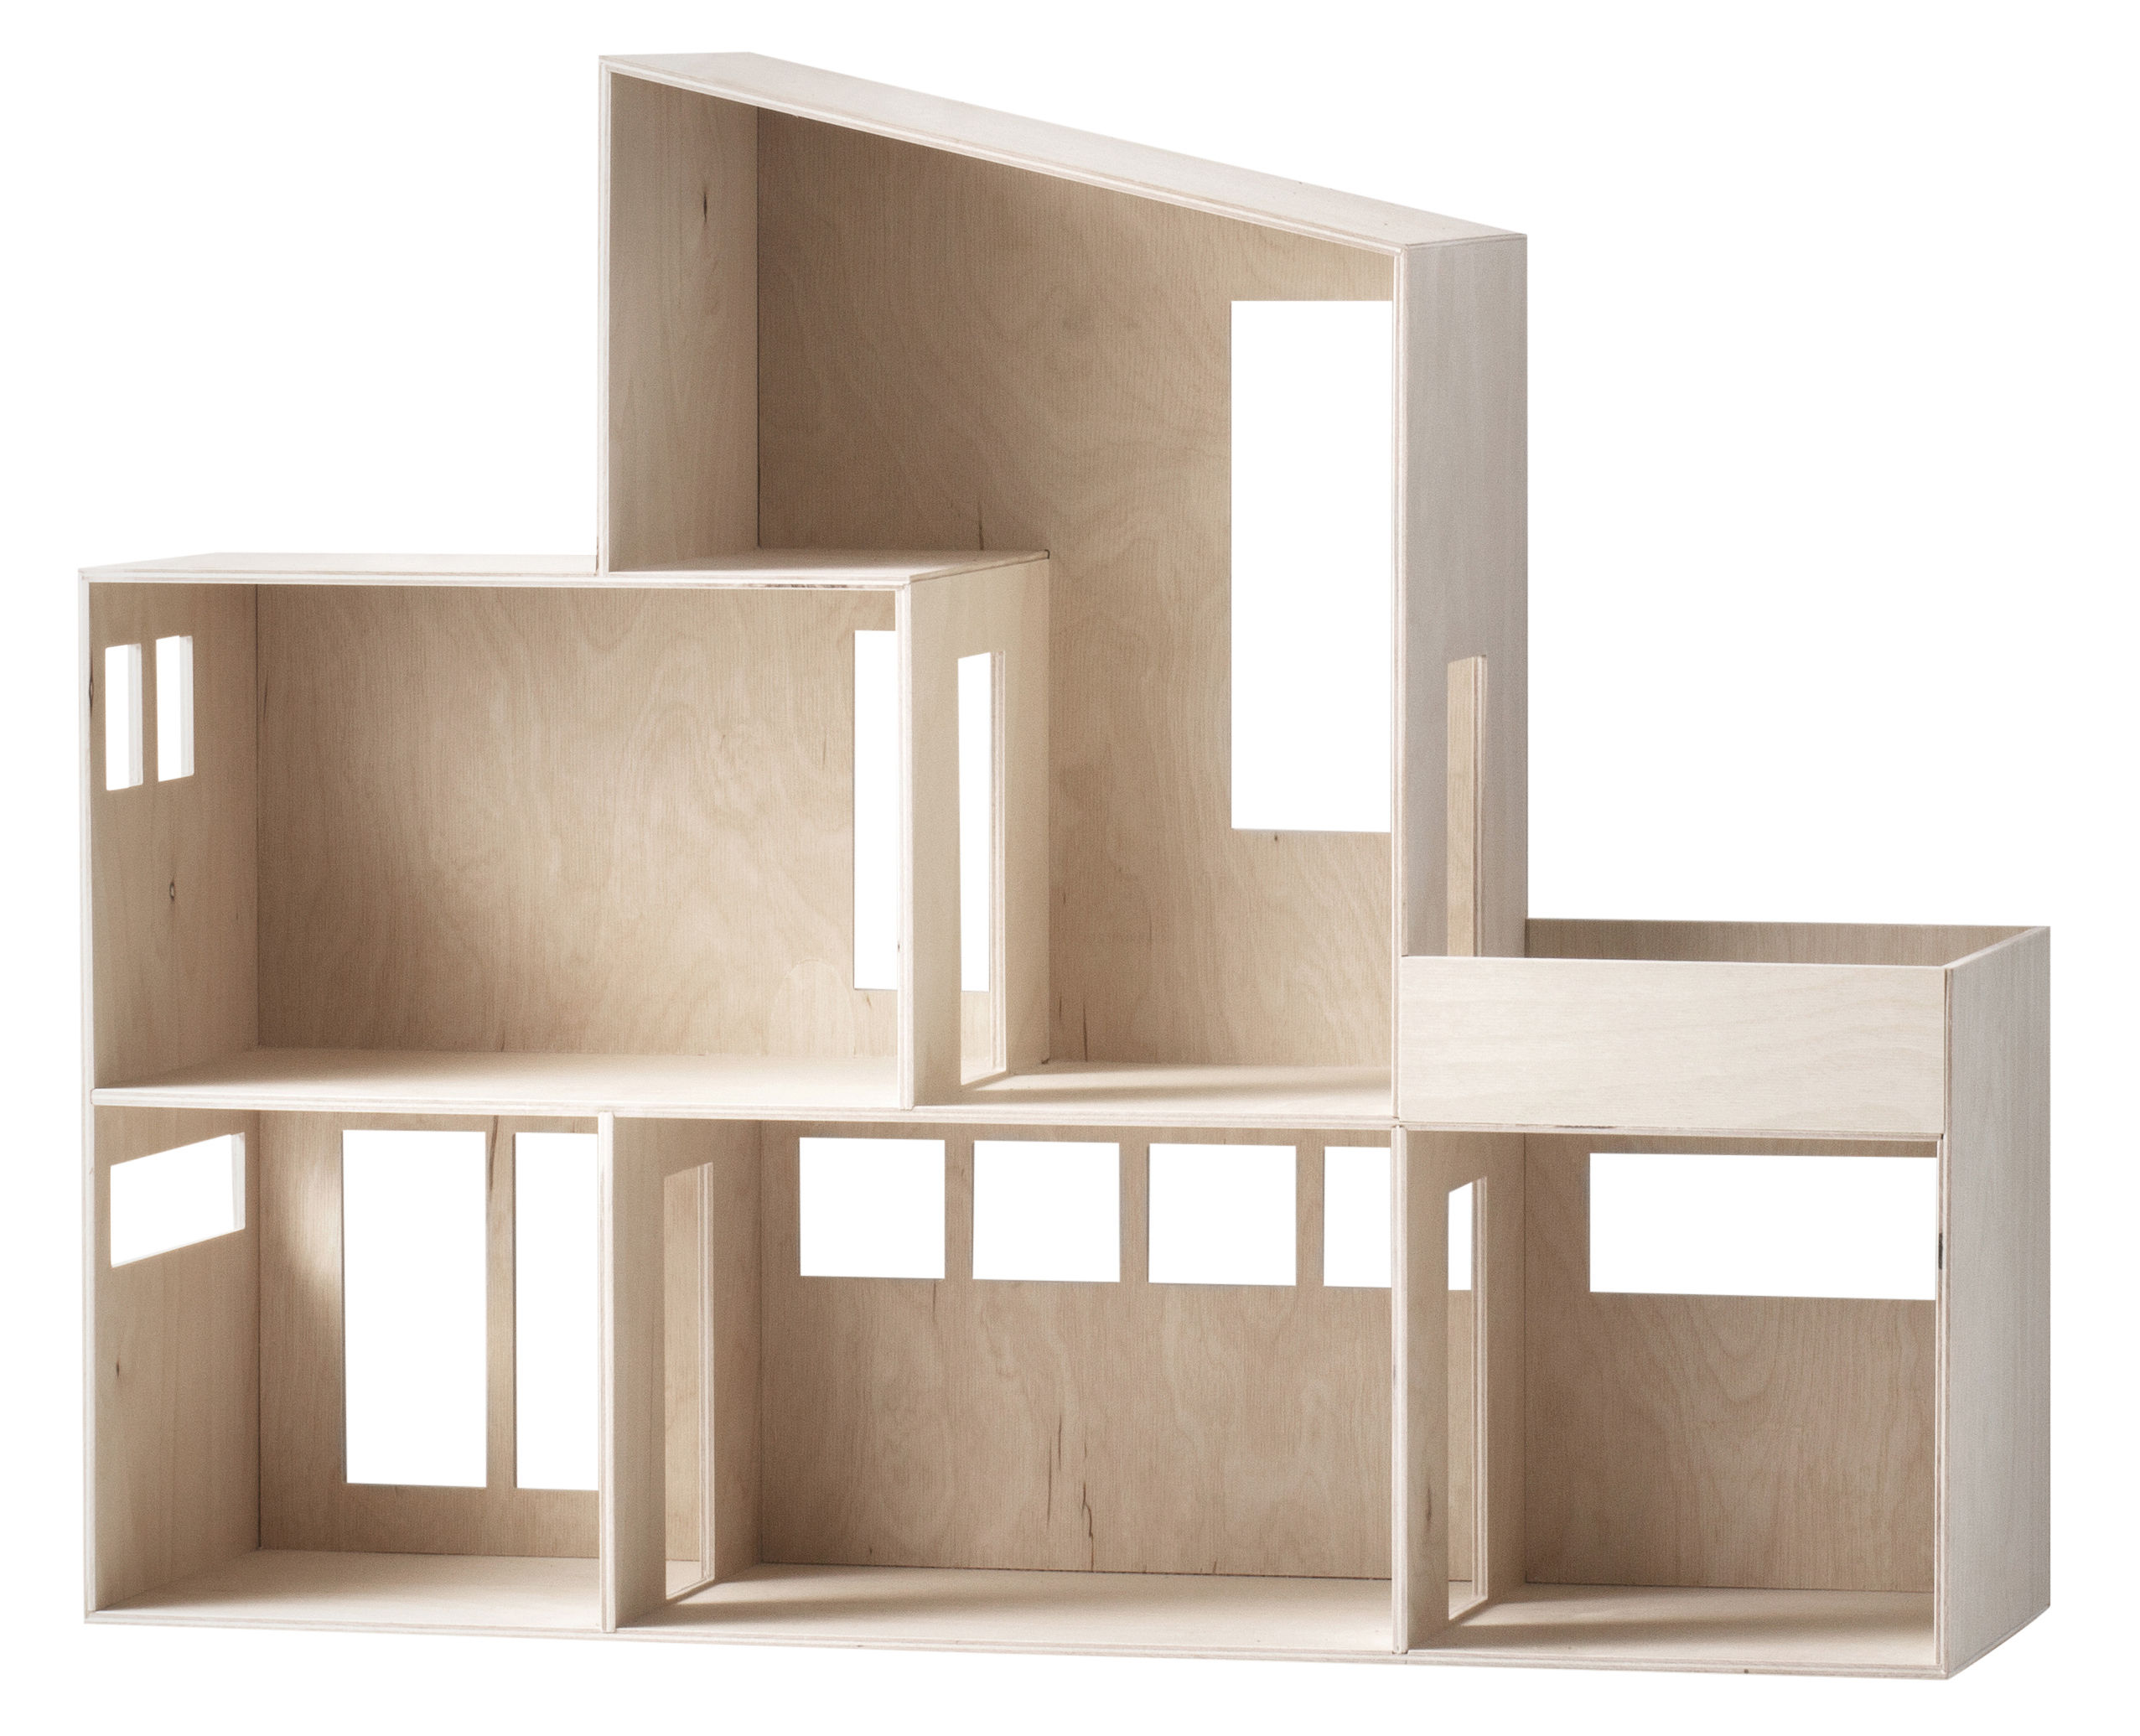 Furniture - Bookcases & Bookshelves - Funkis Large Shelf - L 66 x H 55 cm by Ferm Living - Plywood - Natural plywood